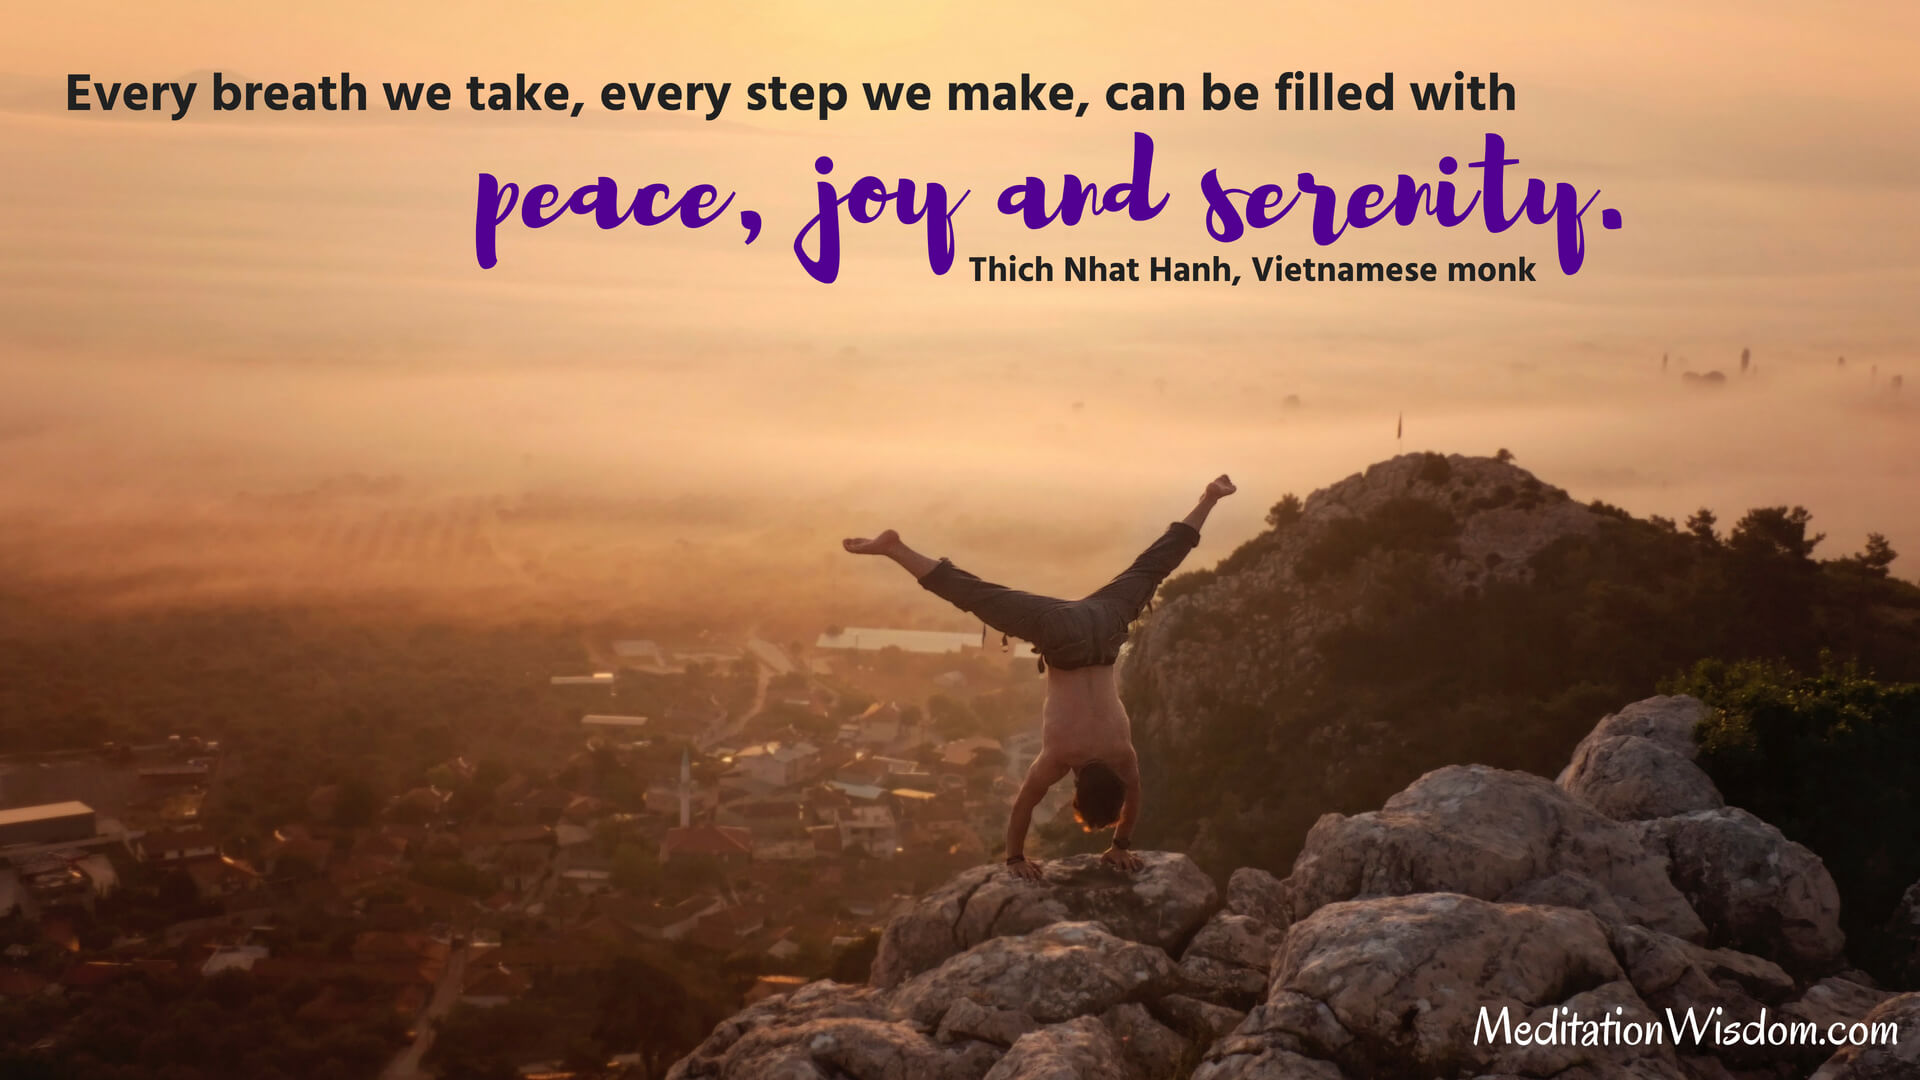 Every breath we take, every step we make, can be filled with peace, joy and serenity. ~Thich Nhat Hanh #quotes #peace #joy #meditation